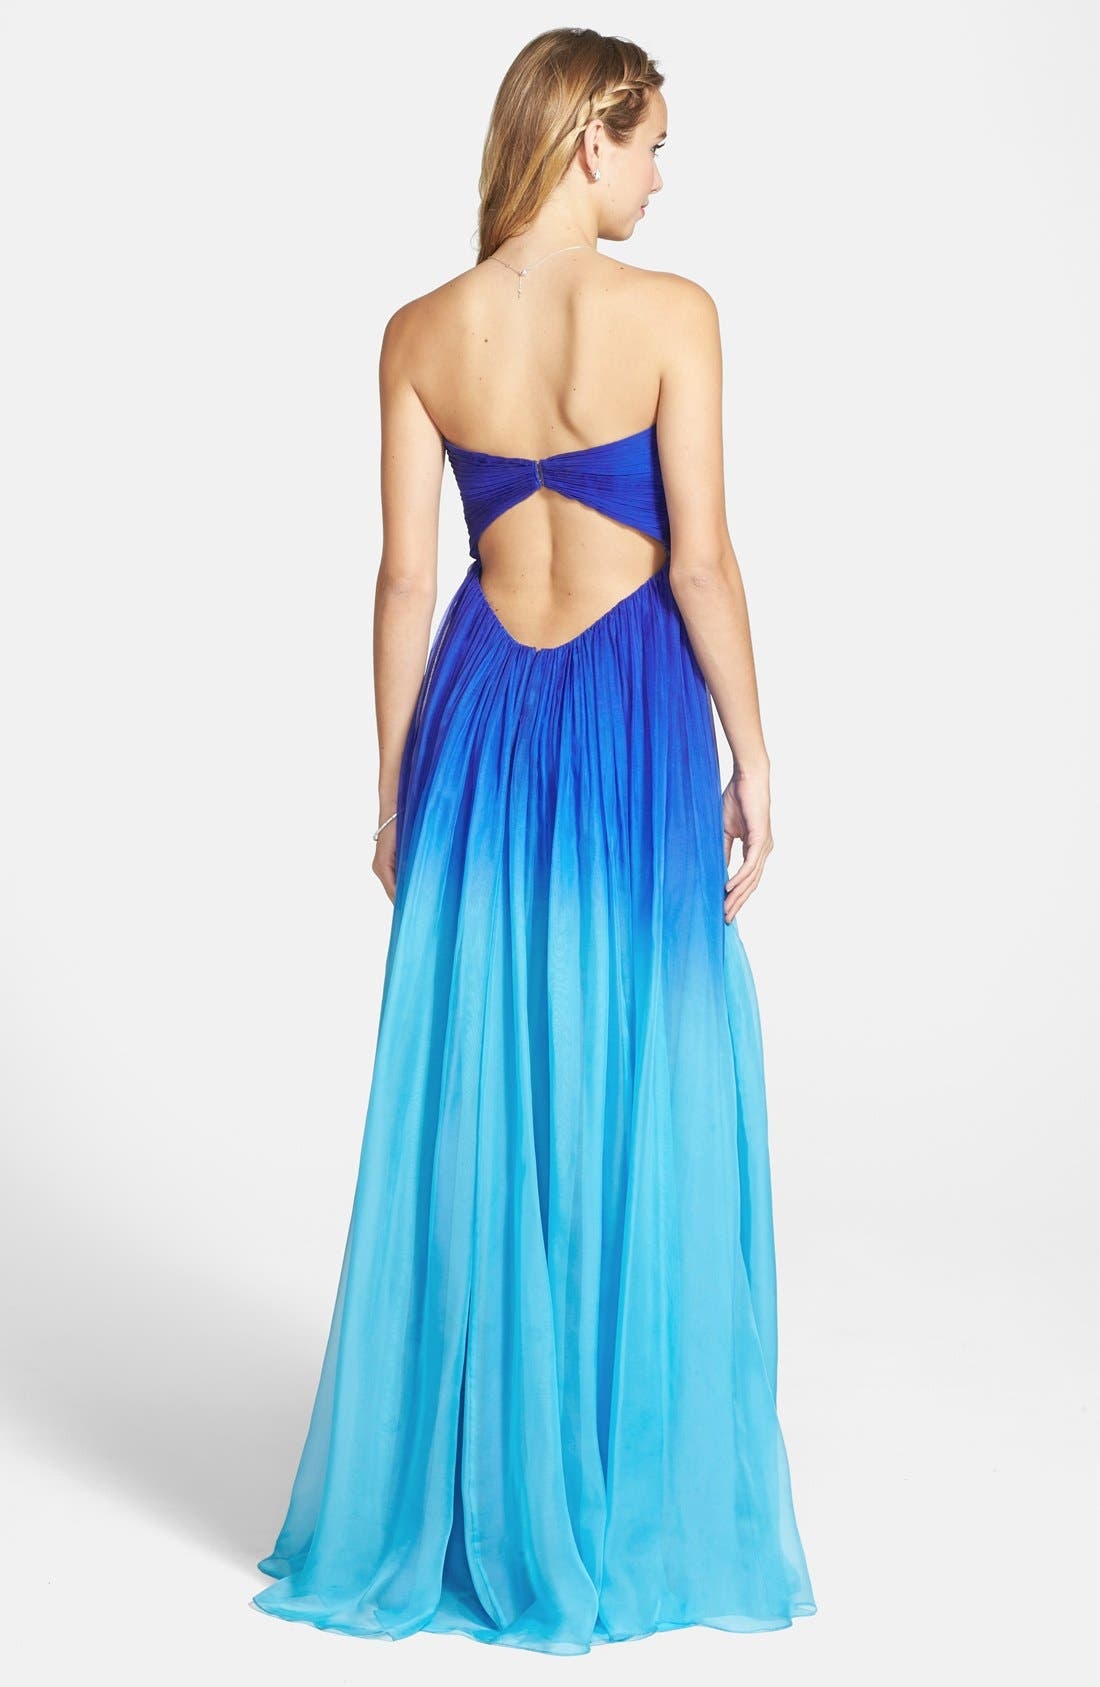 Ruched Ombré Chiffon Strapless Gown,                             Alternate thumbnail 5, color,                             440